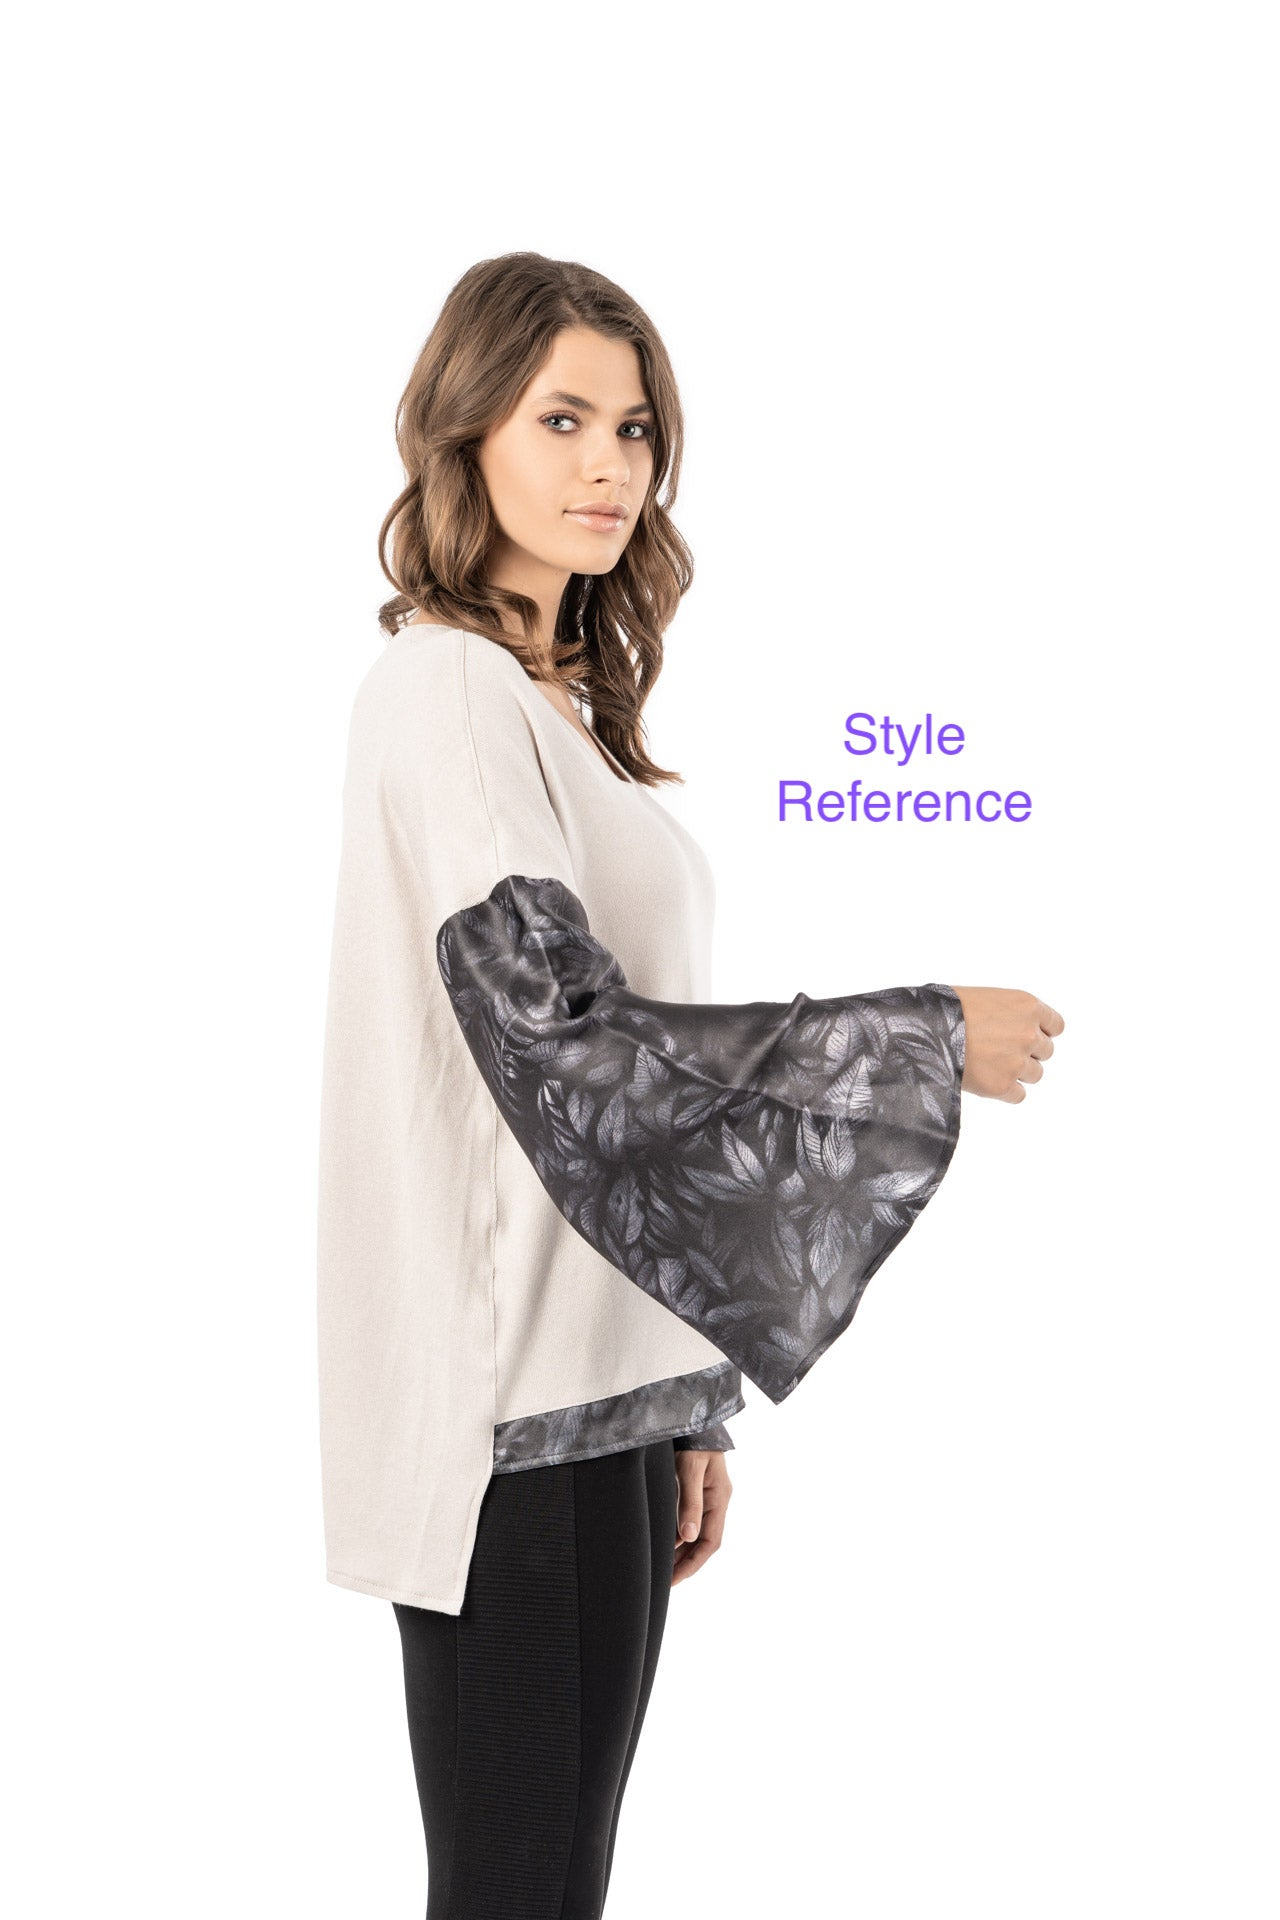 Scala Top - Black Mantra Print Long Sleeve Top - artTECA